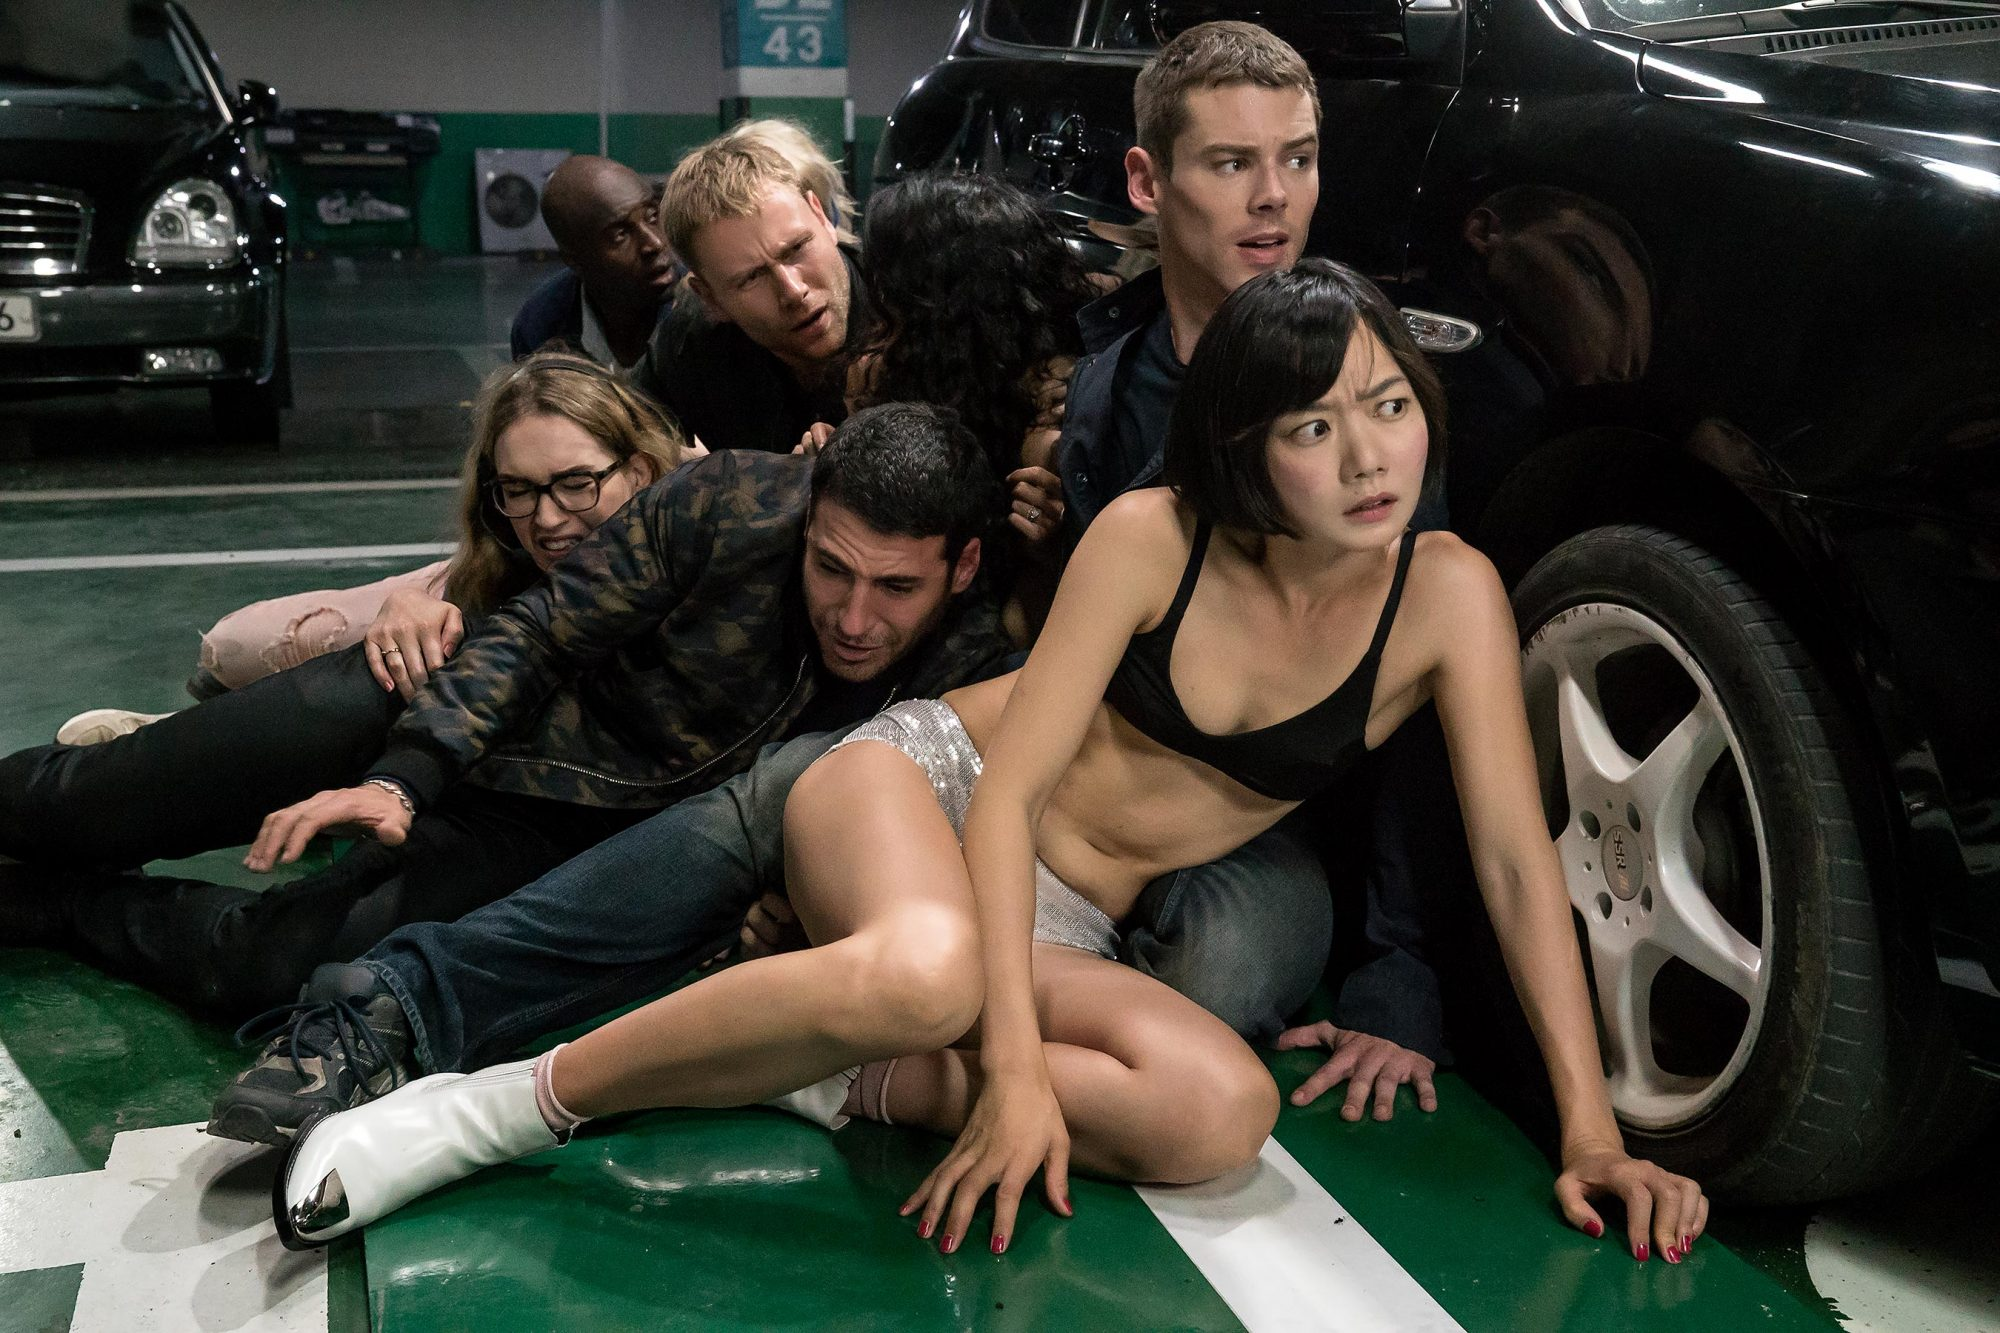 (EMBARGOED UNTIL MAY 7TH) Sense8_211_Unit_01878_R